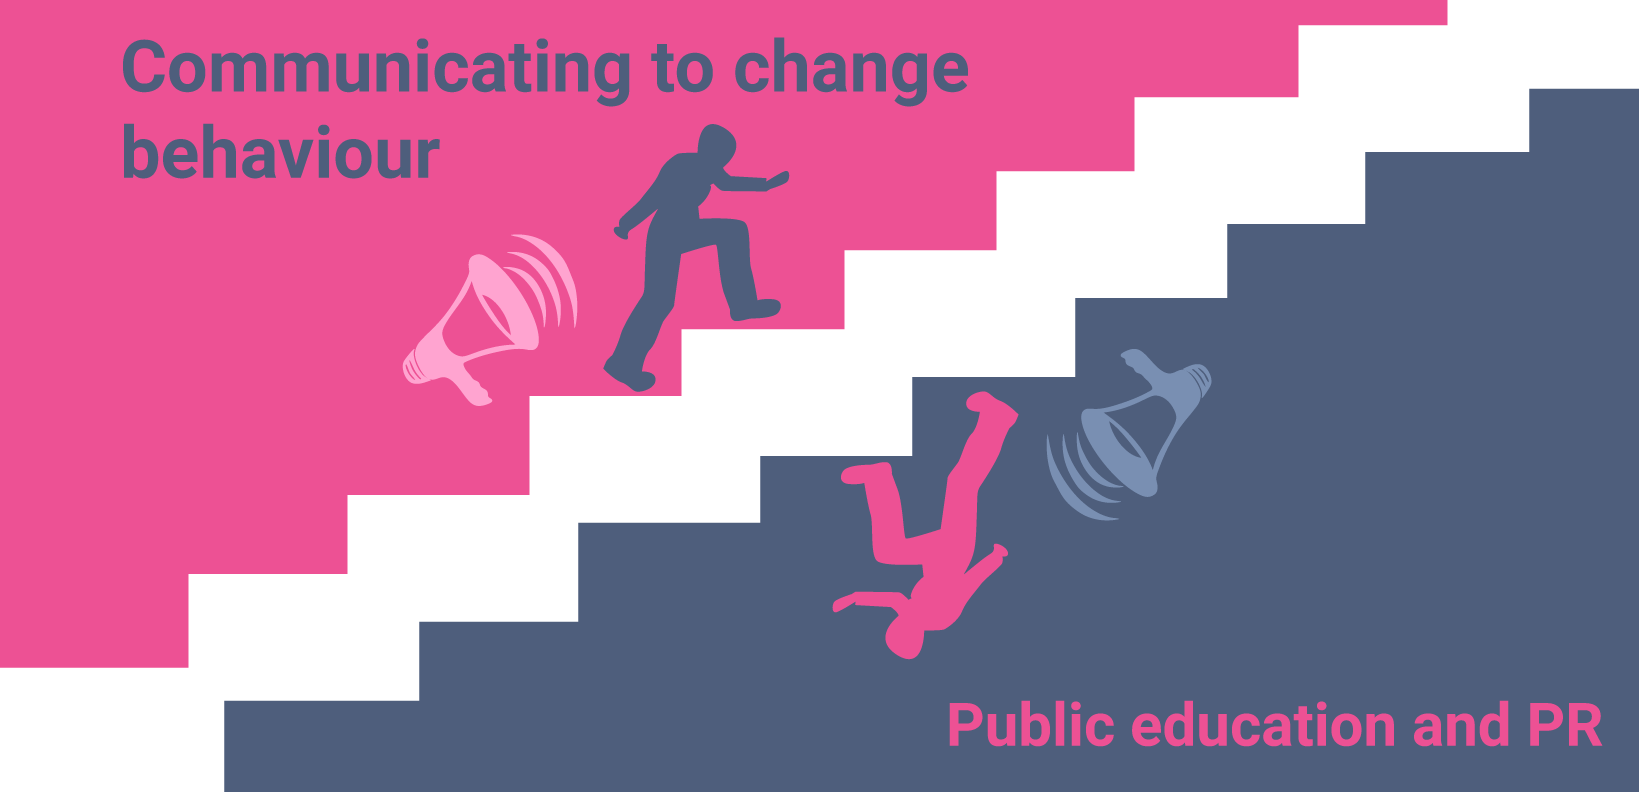 Communicating to Change Behaviour - Public Education and PR